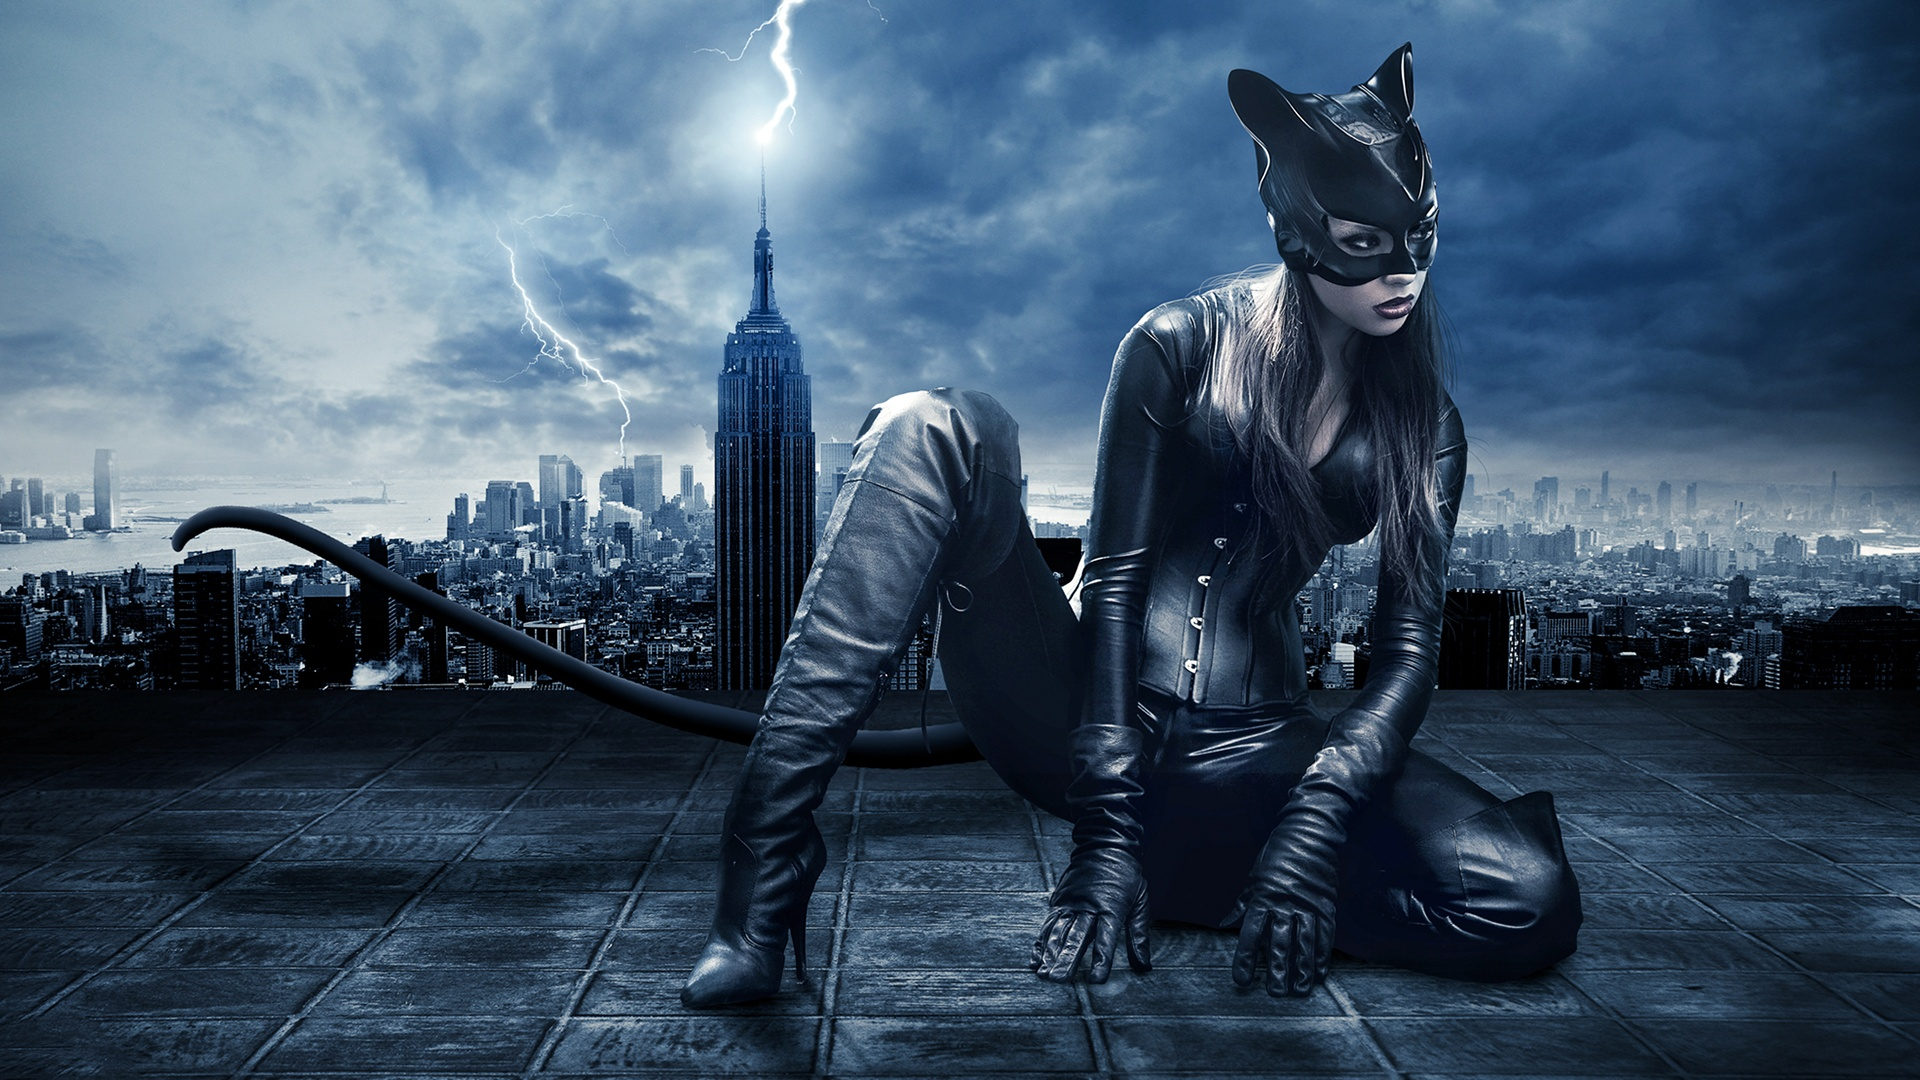 Catwoman art wallpaper | 1920x1080 | #10092